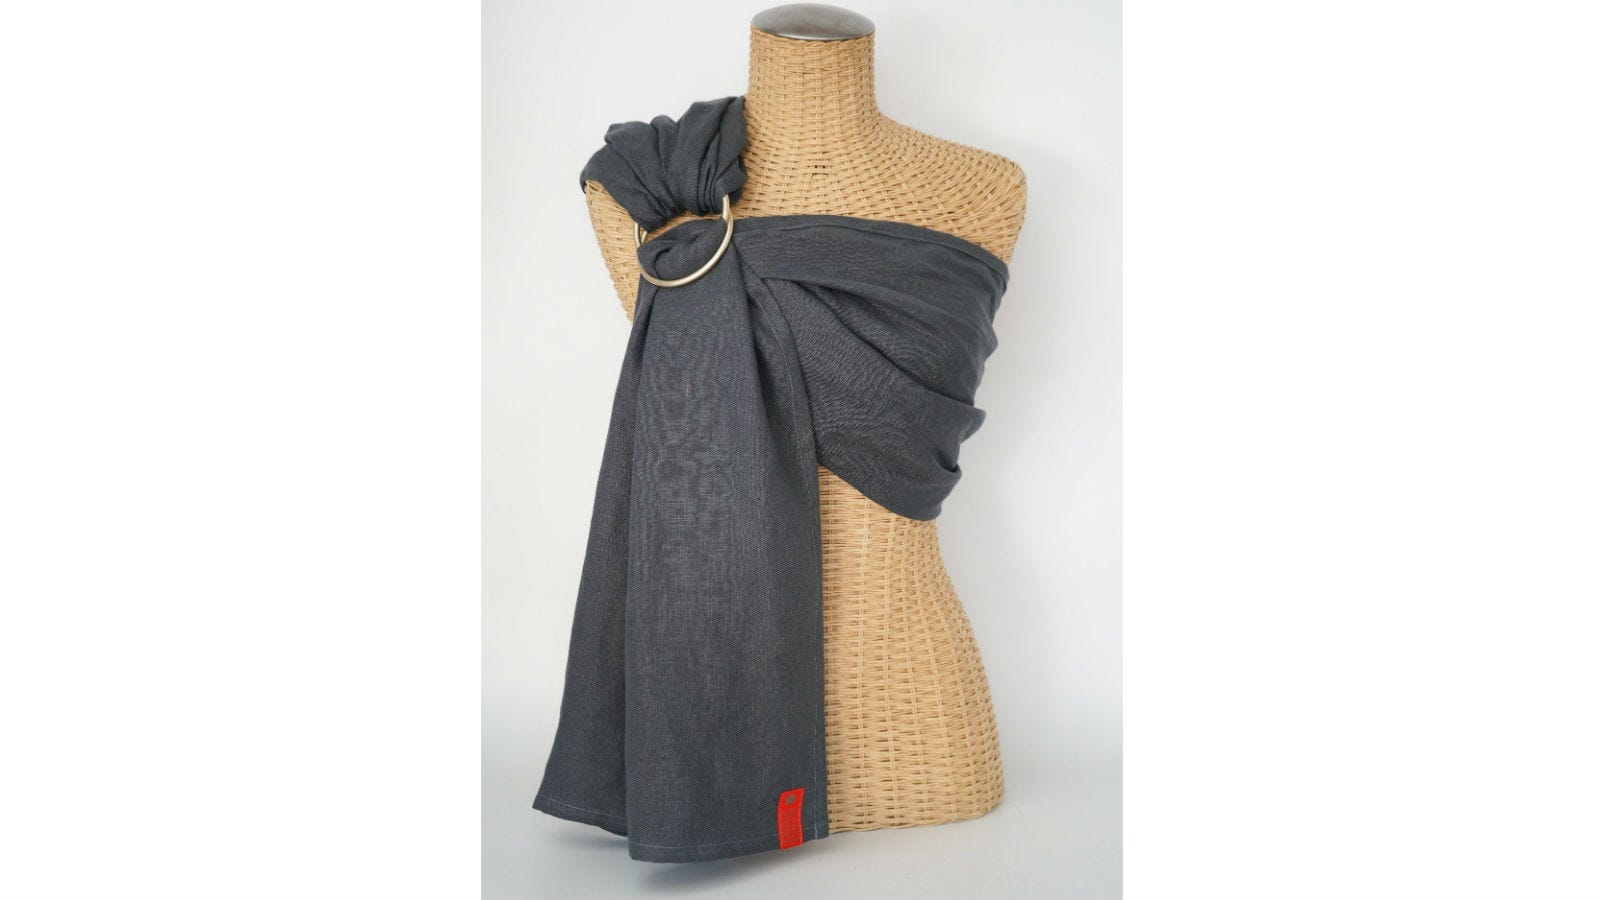 The Sakura Basics Linen Ring Sling on a headless torso wicker mannequin.